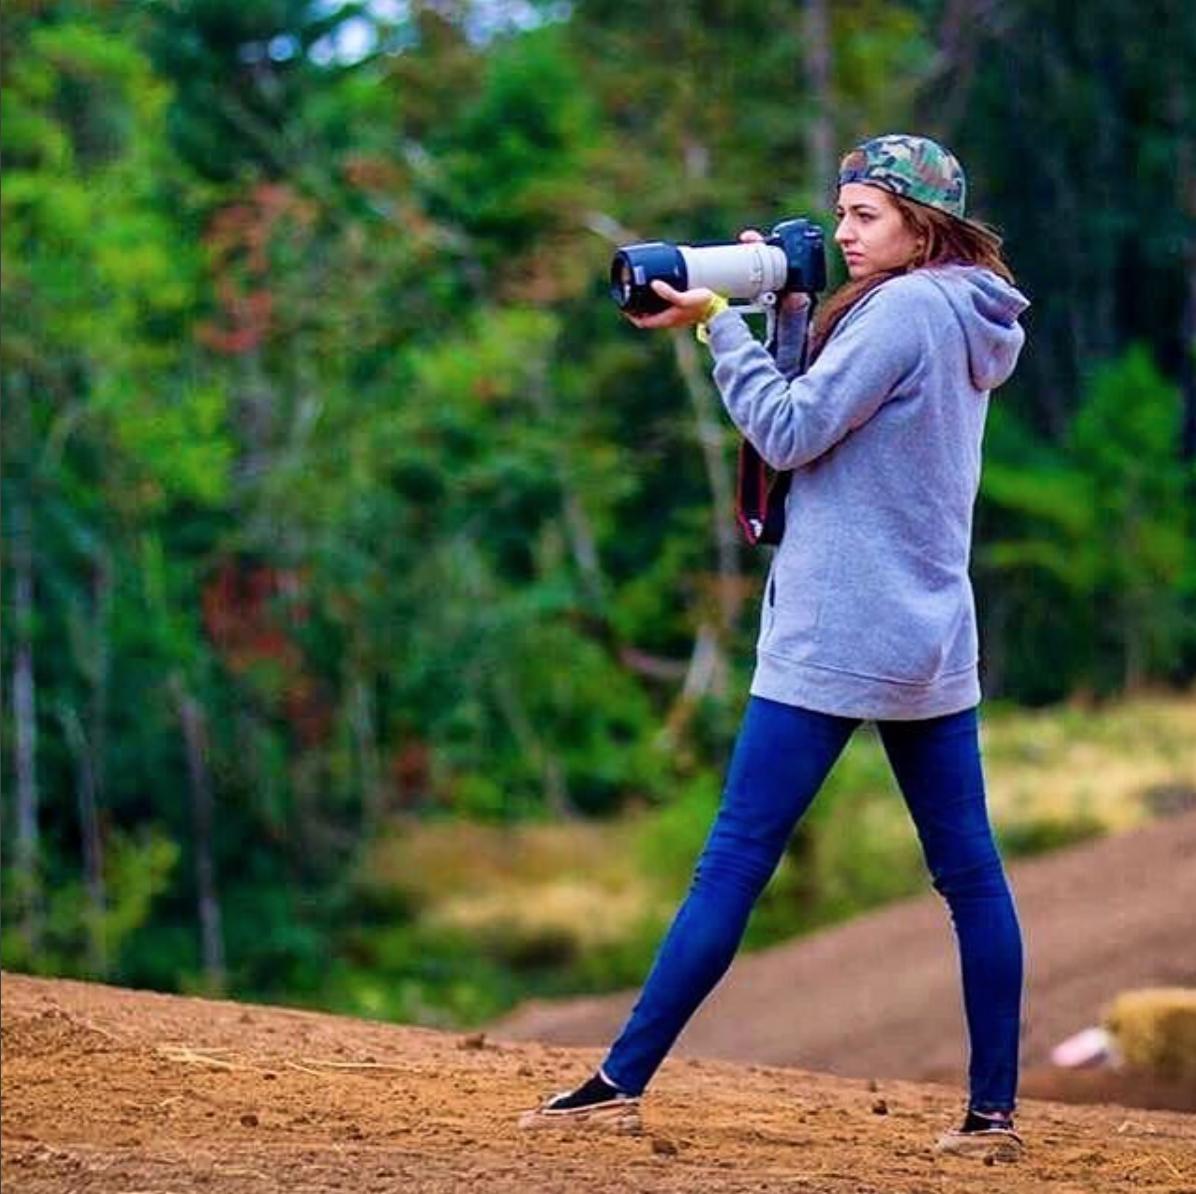 Crashley takes every opportunity to shoot and work on her craft.  There's never a wasted opportunity when you are pursuing your dreams.